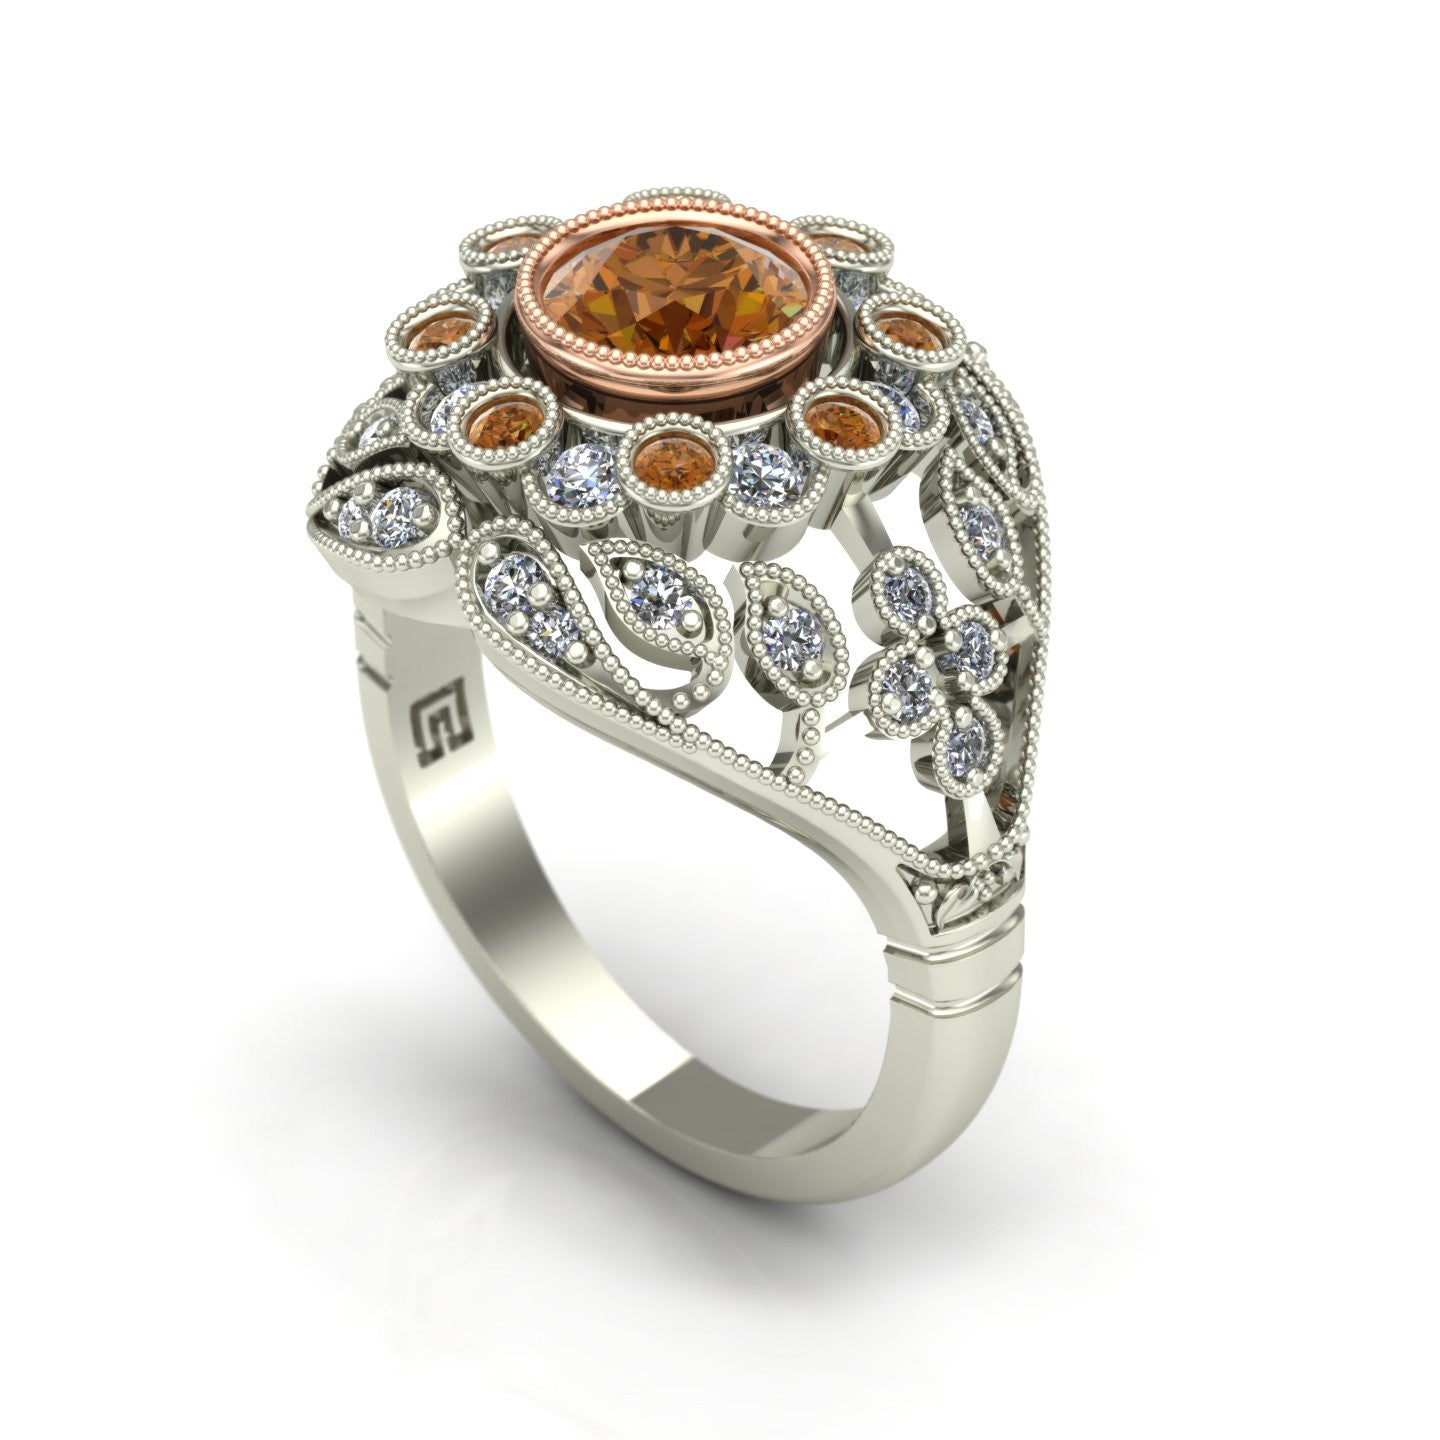 Cognac and white diamond bezel ring in 14k rose and white gold